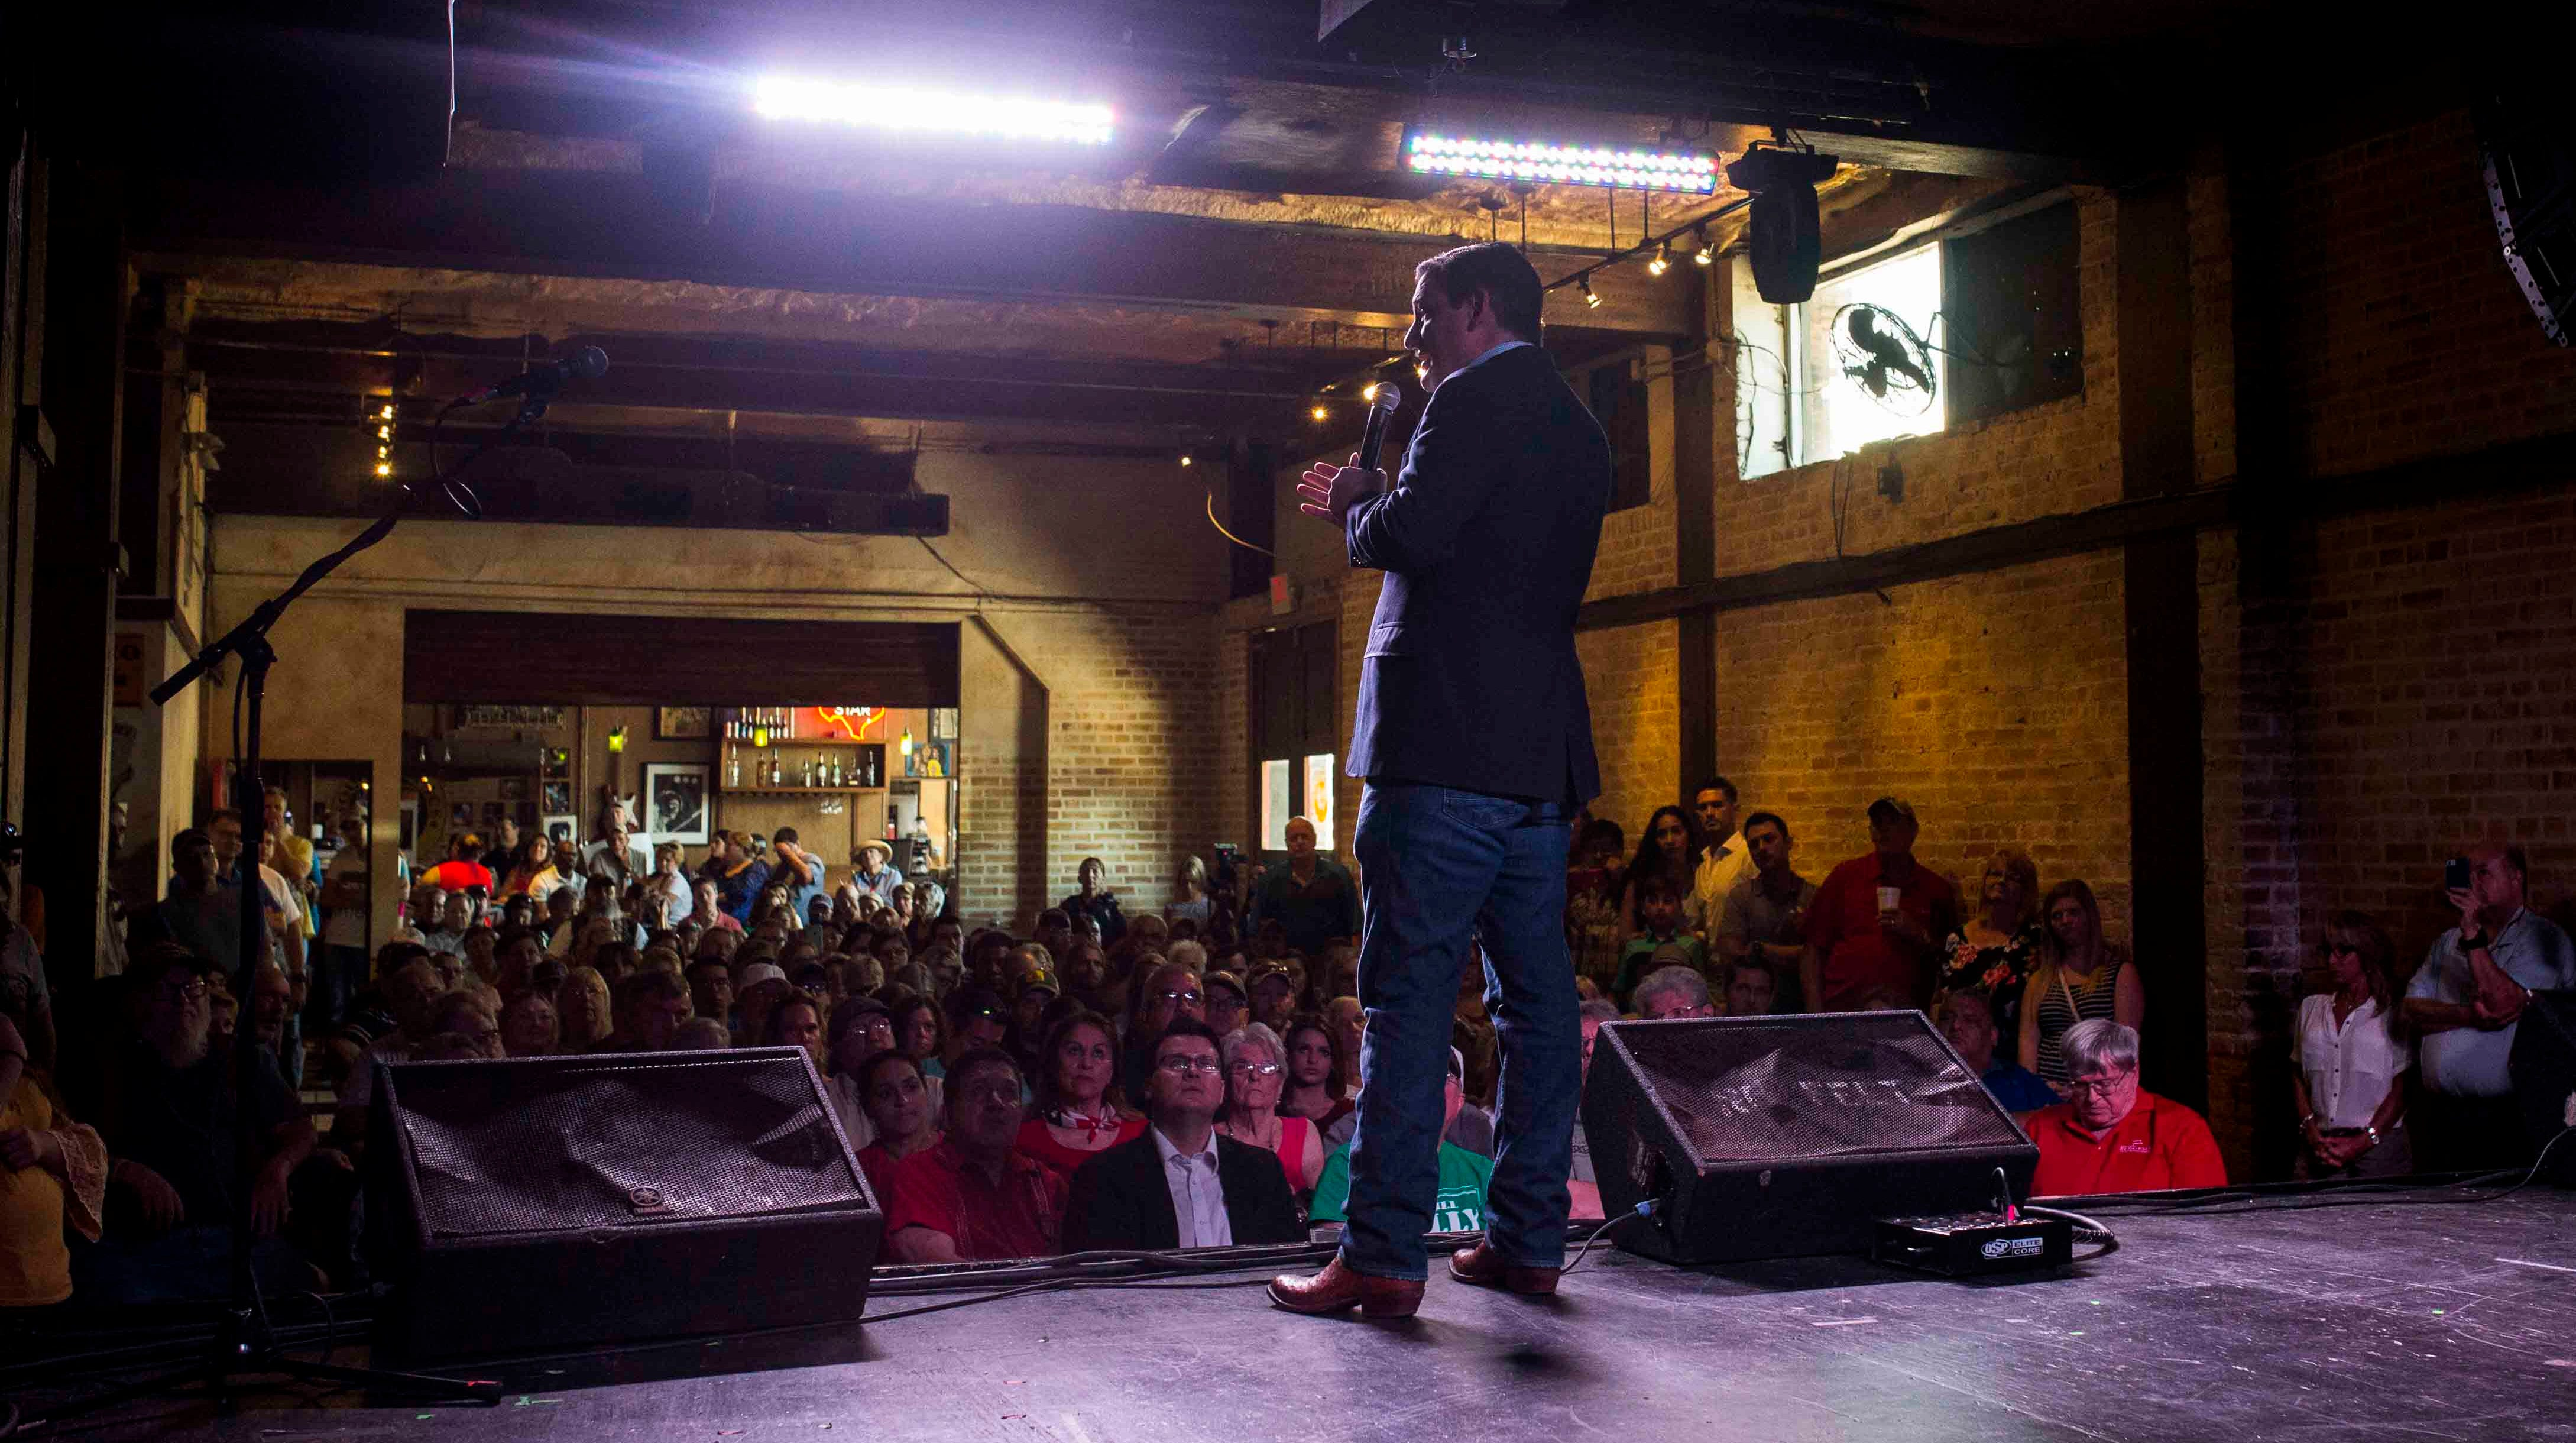 U.S. Sen. Ted Cruz at Corpus Christi's House of Rock during a campaign stop on Aug. 18, 2018.